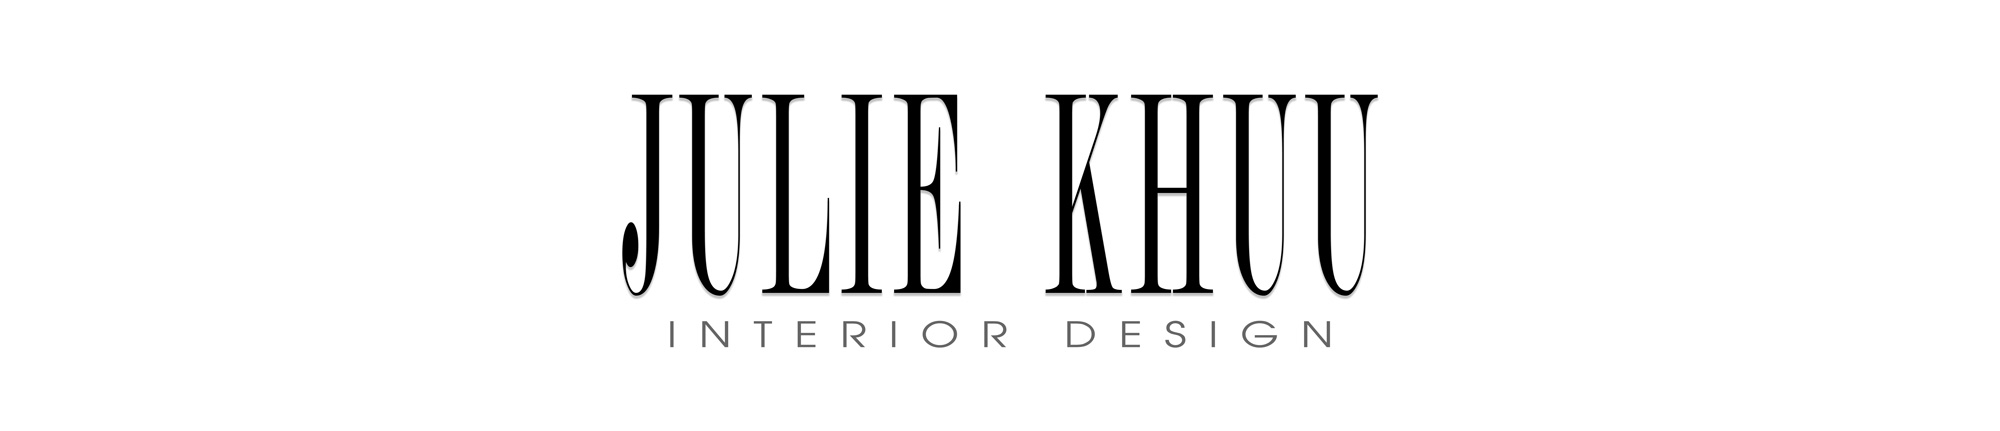 Julie Khuu Interior Design Website and Life and Style Blog